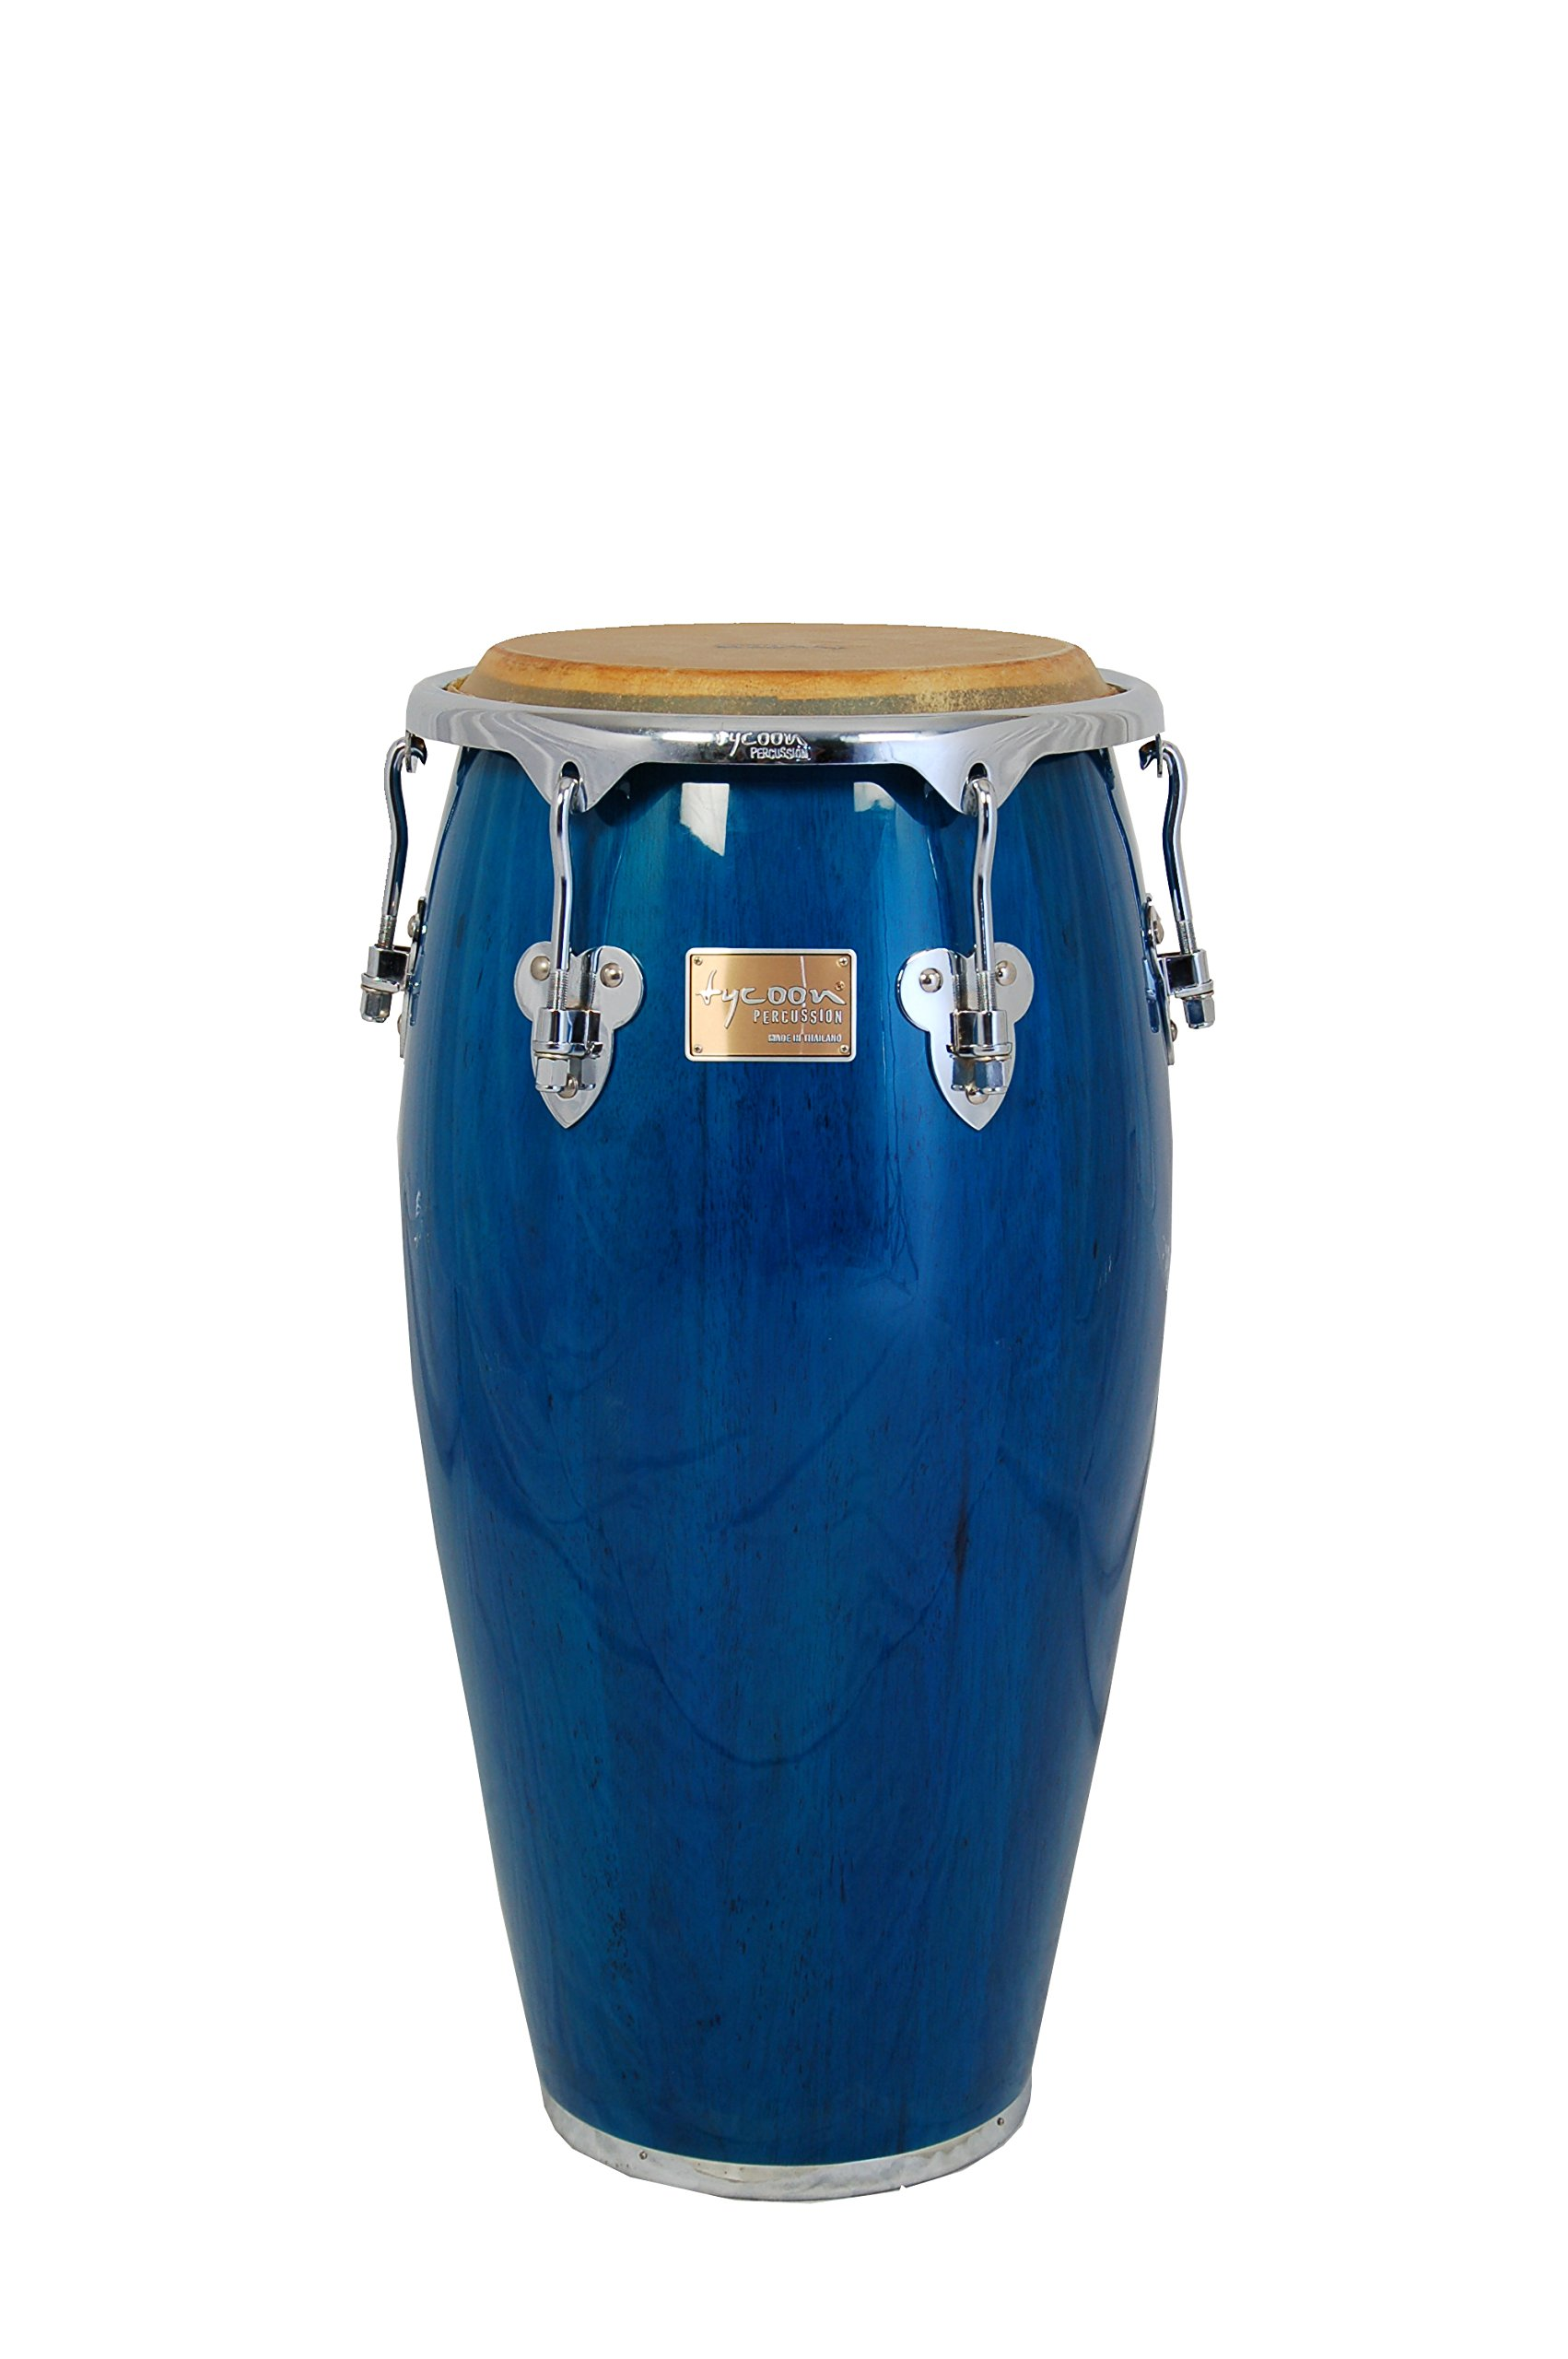 Tycoon Percussion 10 Inch Master Classic Series Blue Requinto With Single Stand by Tycoon Percussion